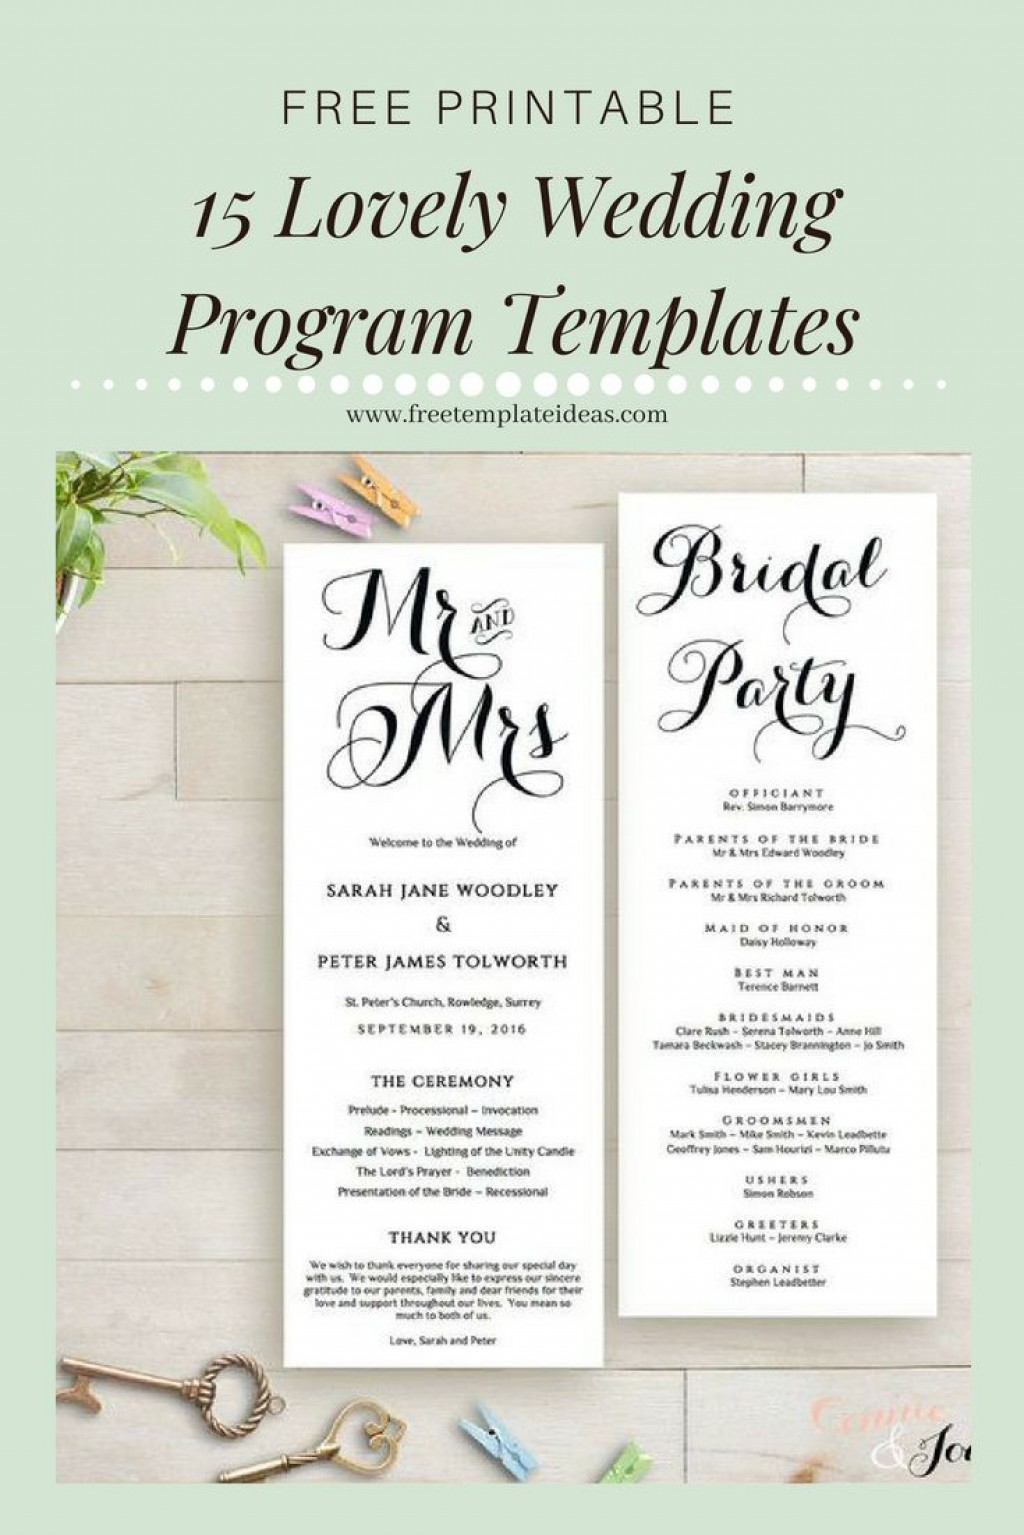 007 Magnificent Free Downloadable Wedding Program Template Sample  Templates That Can Be Printed Printable Fall ReceptionLarge